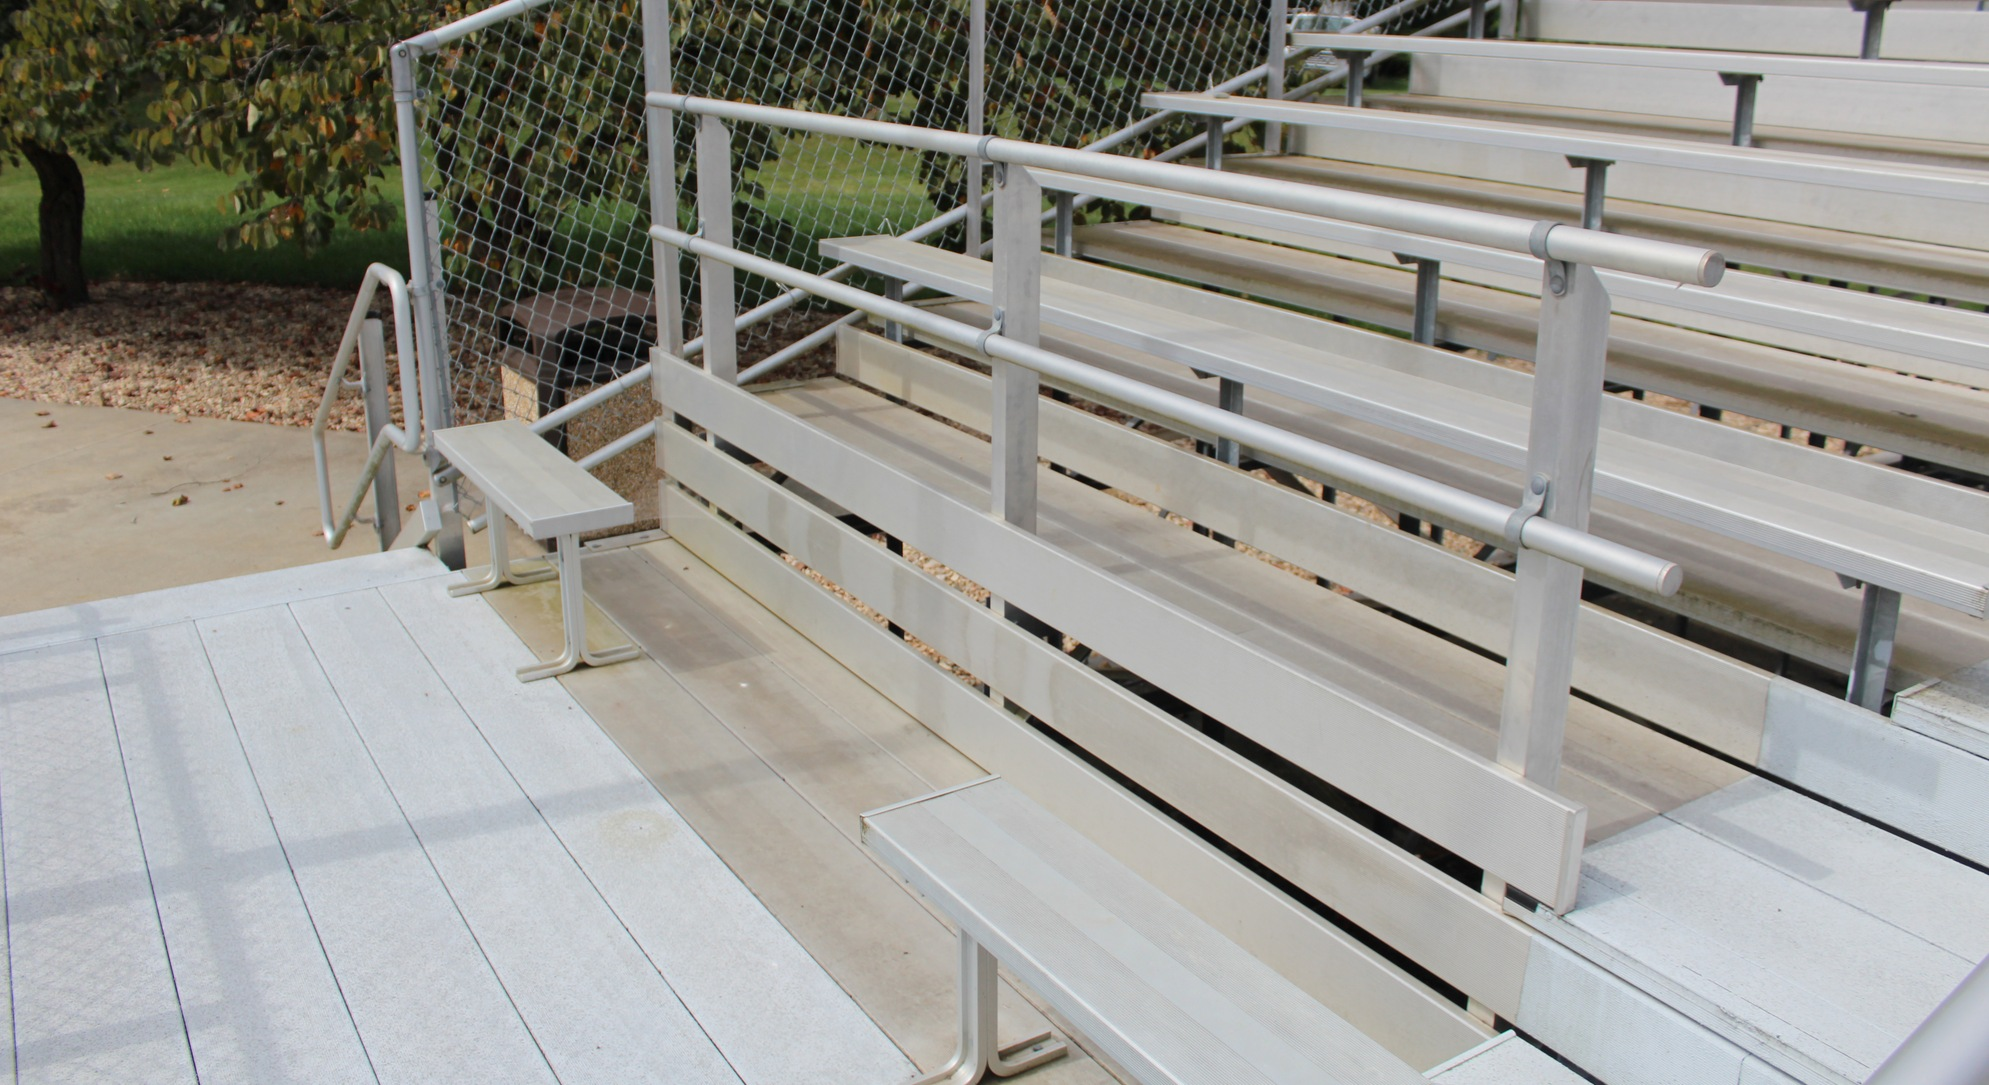 accessible seating area in softball bleachers